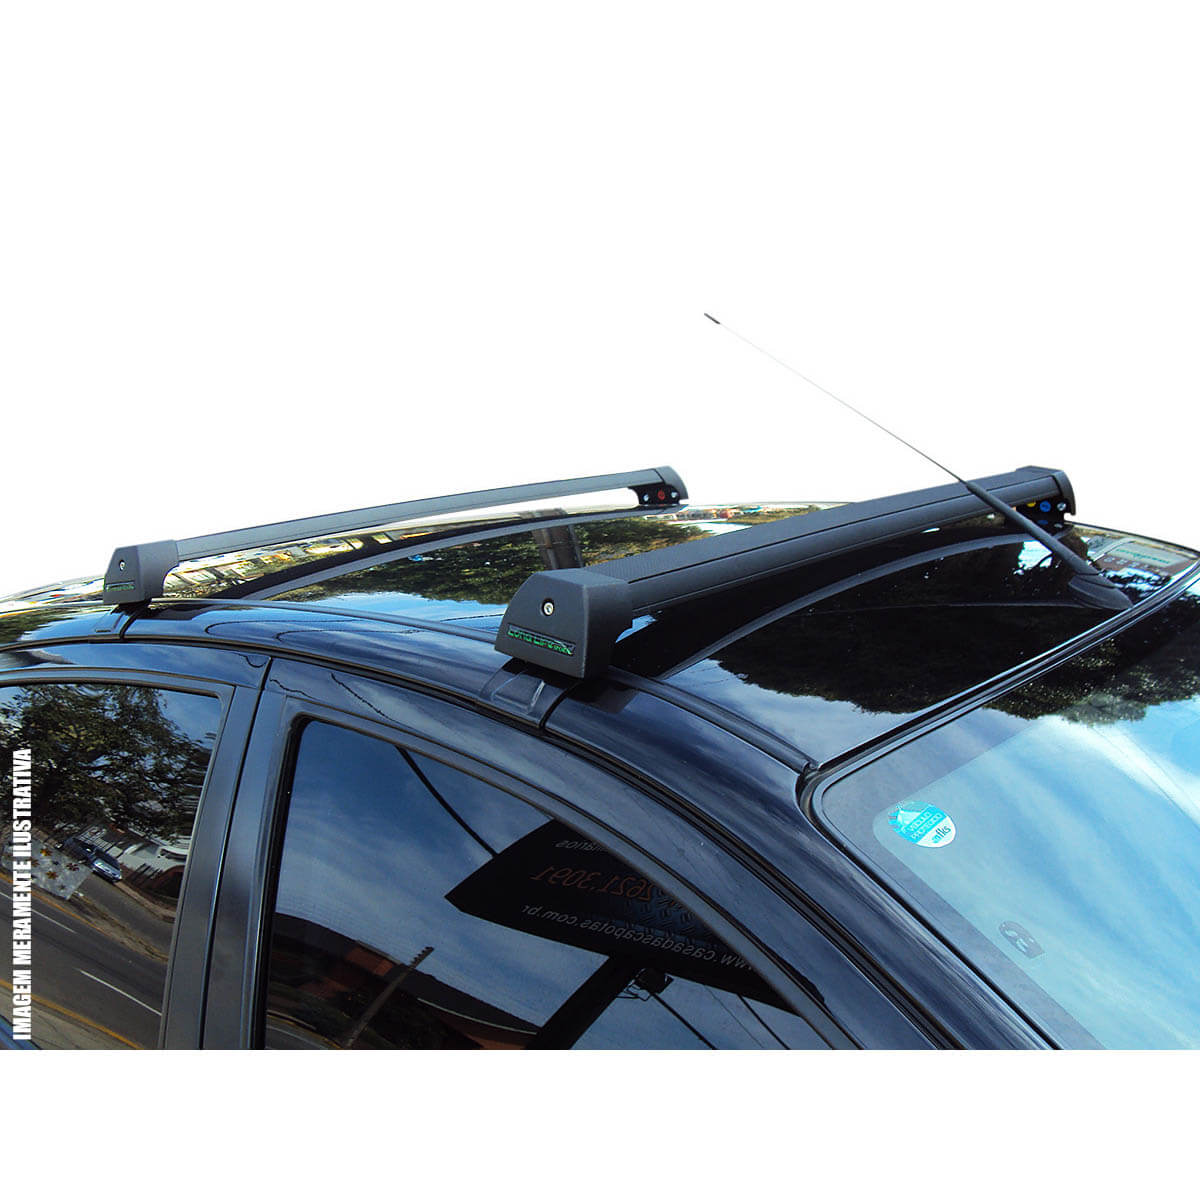 Rack de teto Long Life Sports preto Fluence 2011 a 2017